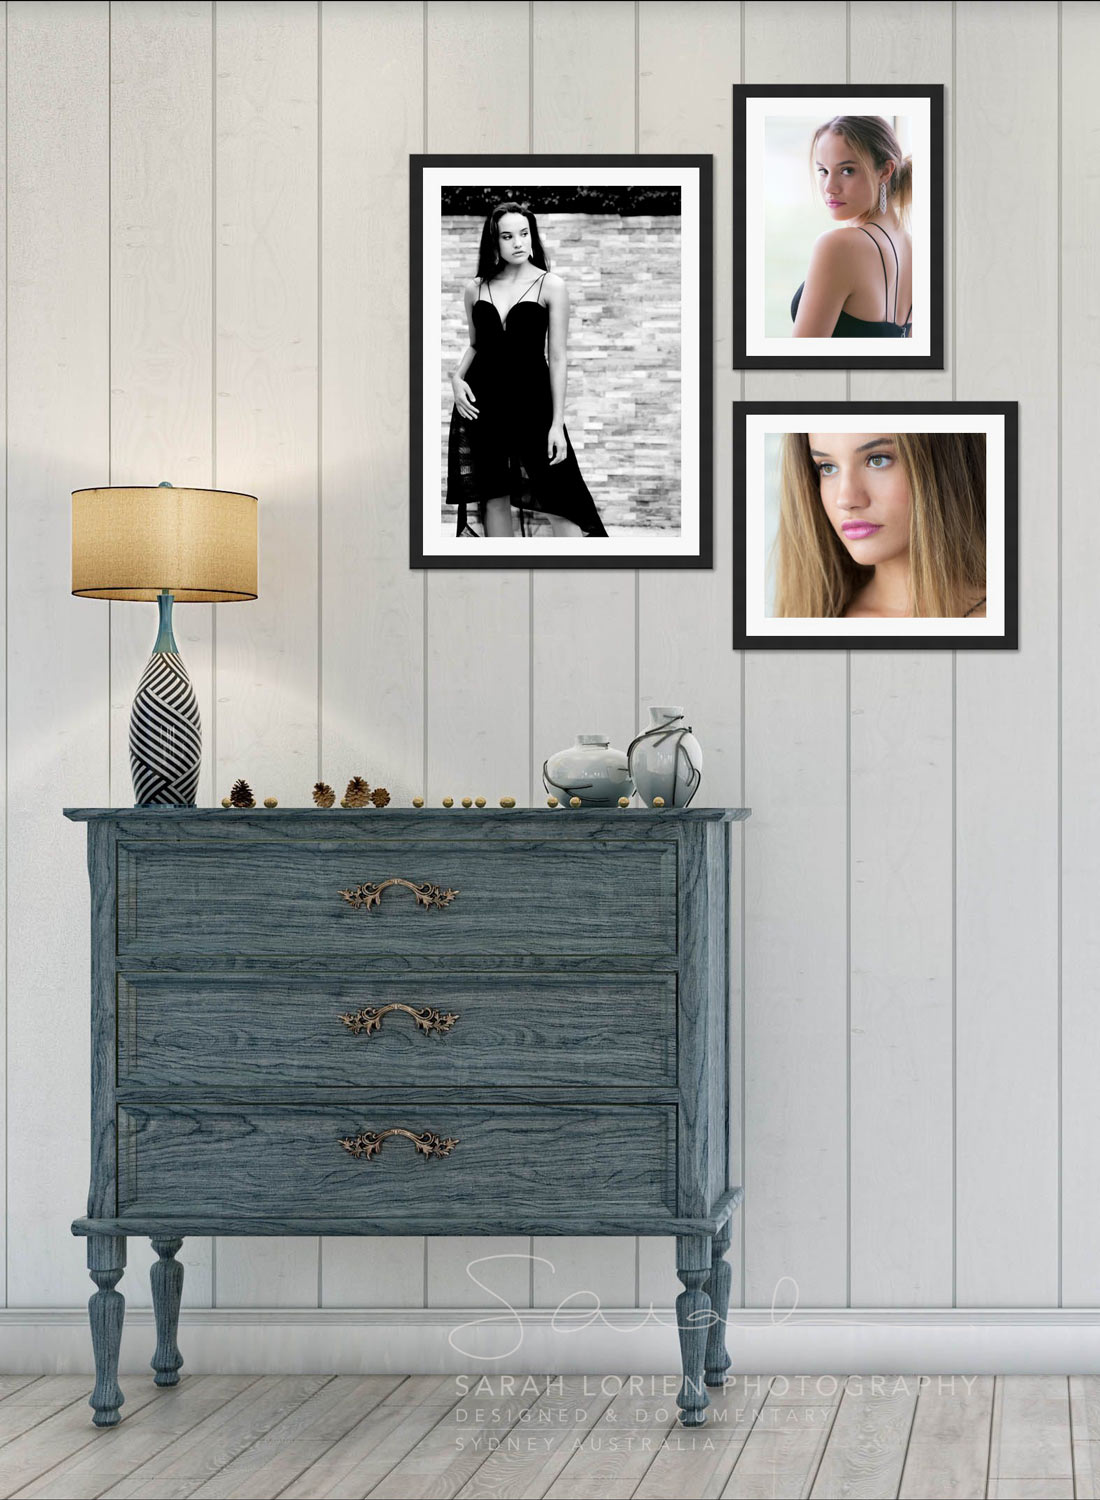 Framed portraits hanging on the wall